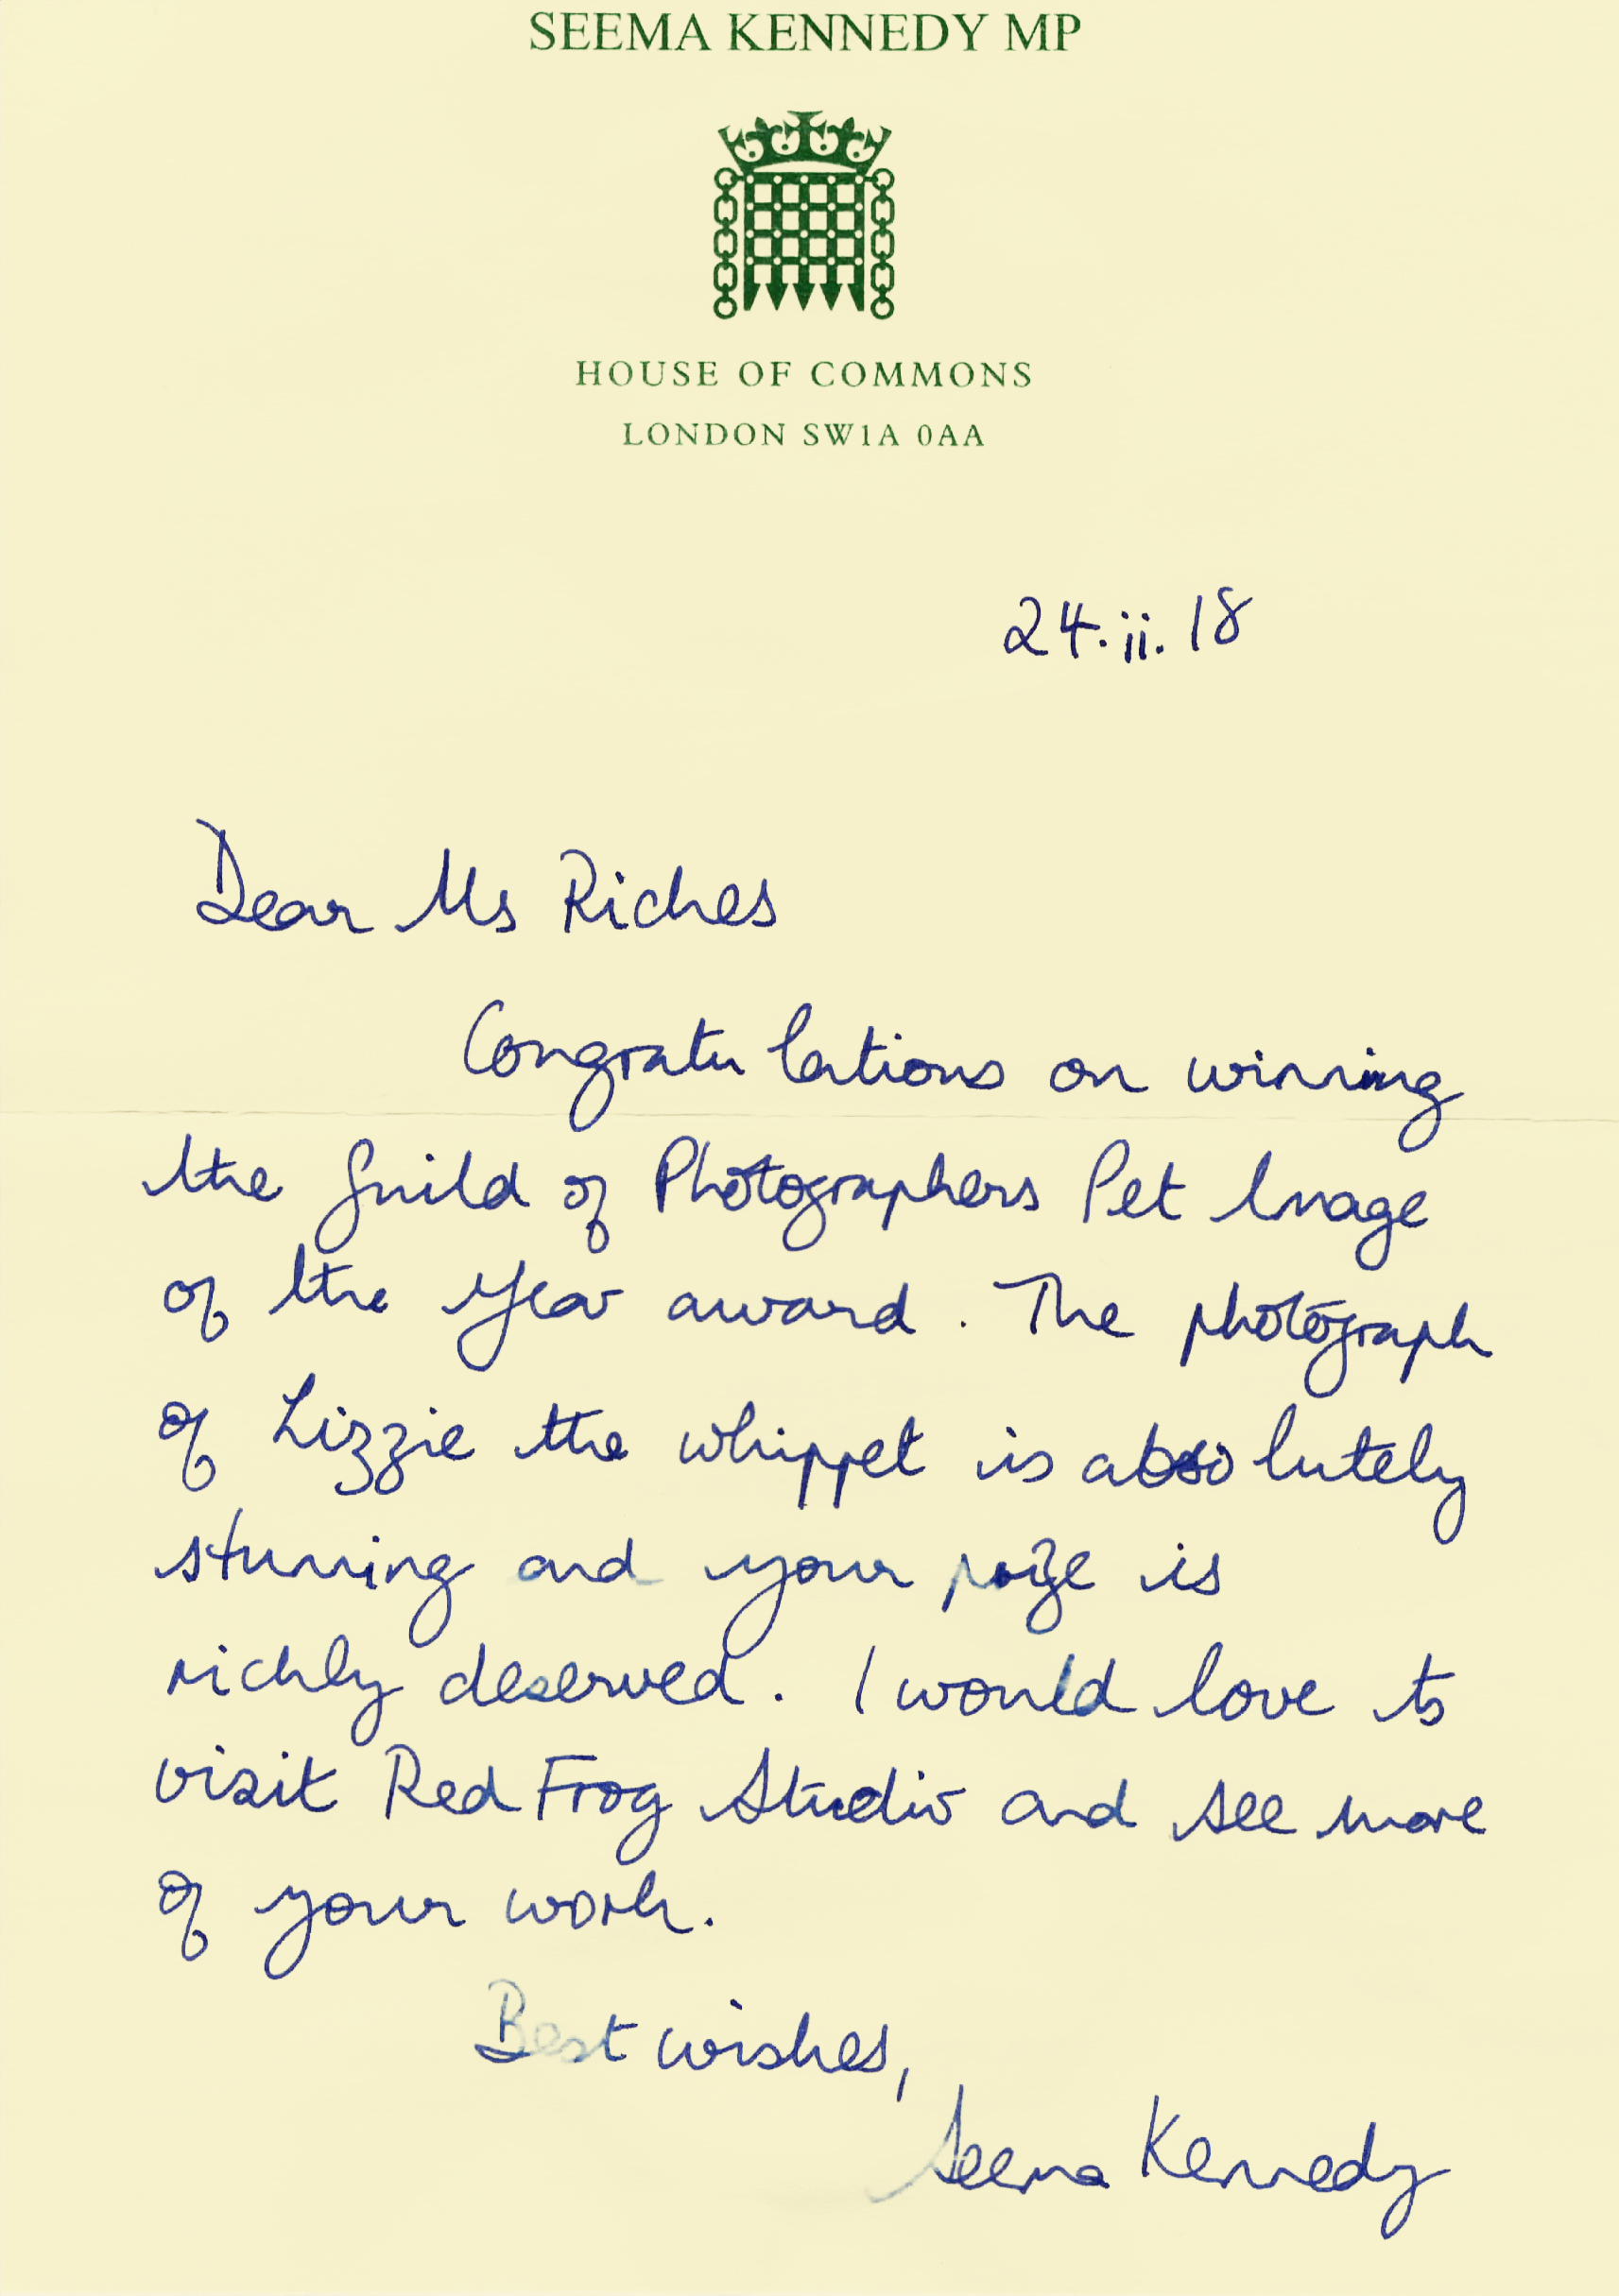 House of Commons Letter from MP Seema Kennedy - Red Frog